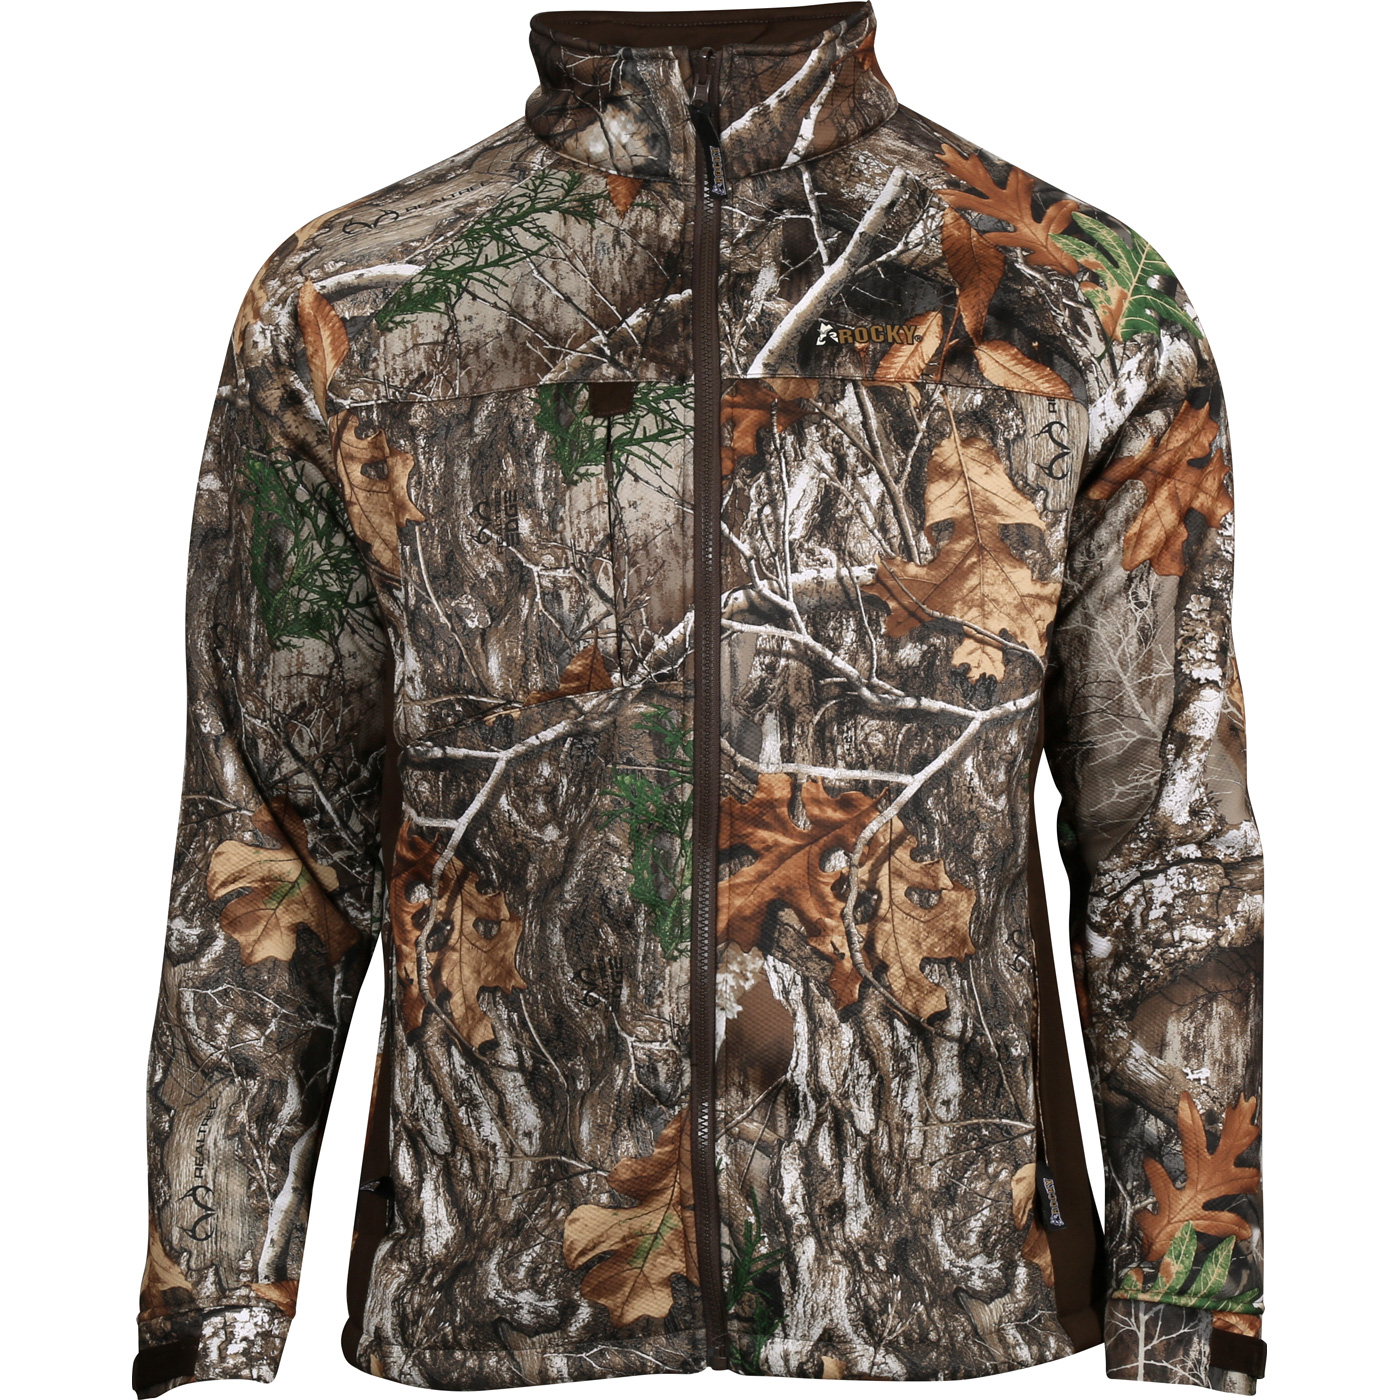 7b9ffd70e06 Men's Rocky Maxprotect Level 3 Camouflage Jacket, 600378